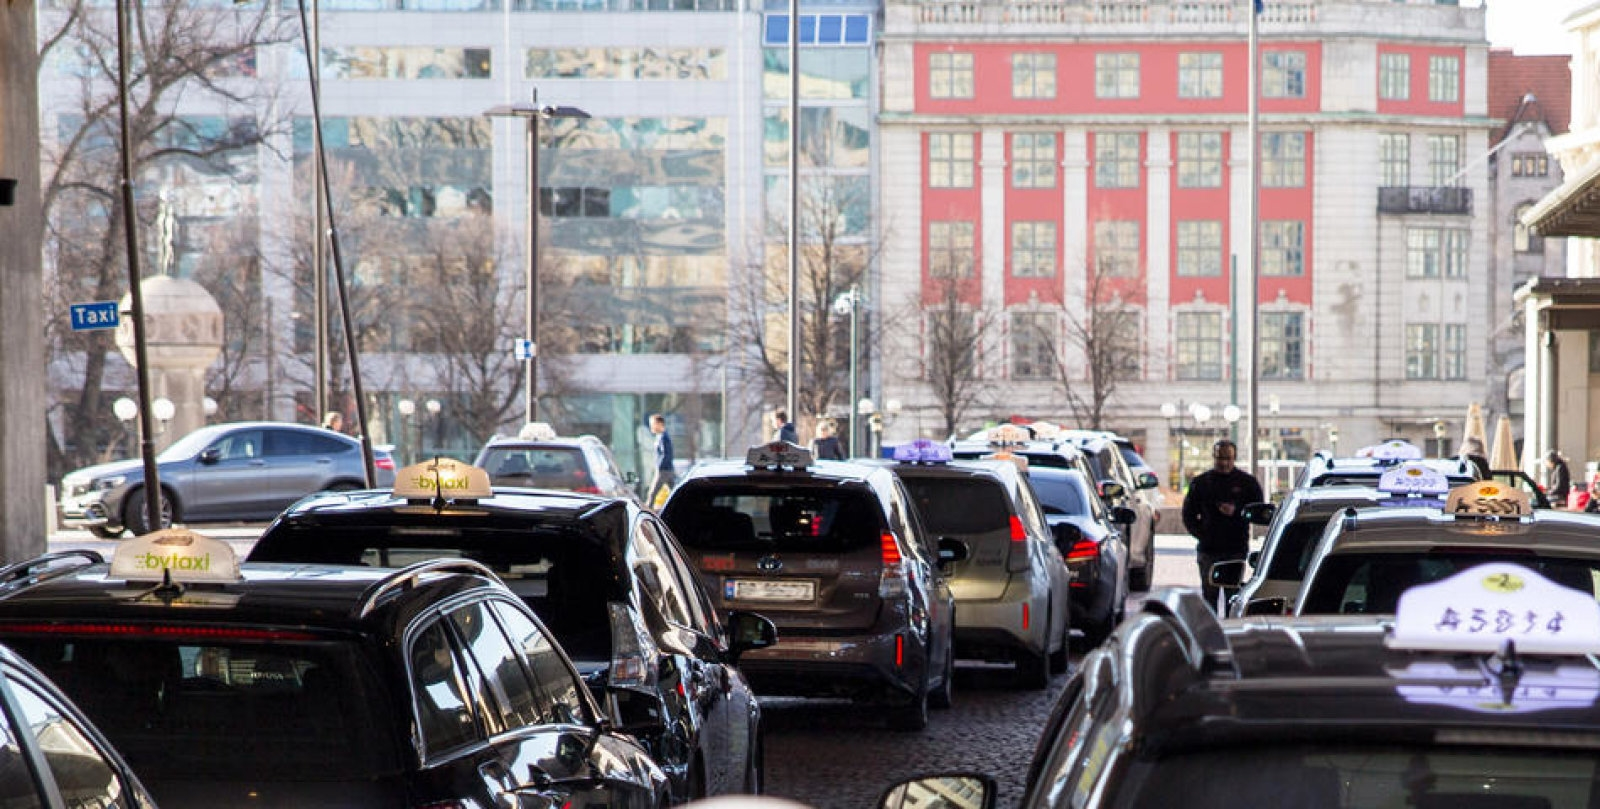 Oslo is working on wireless charging for its electric taxis   DeviceDaily.com